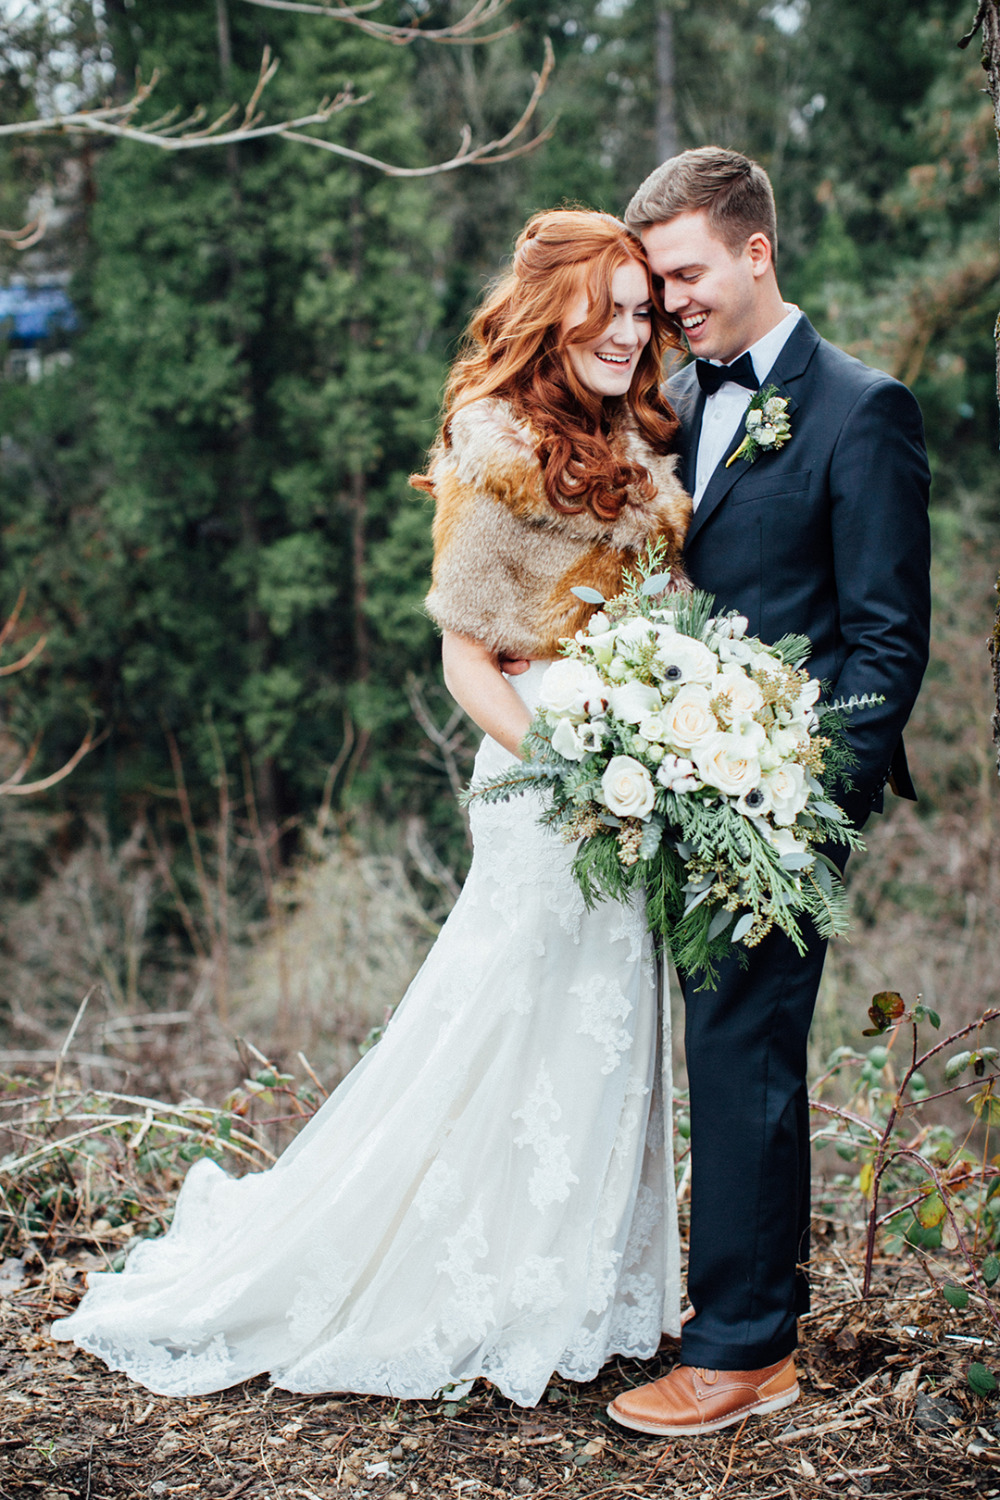 Why Have A Winter Wedding? Because They Are Breathtaking And Magical